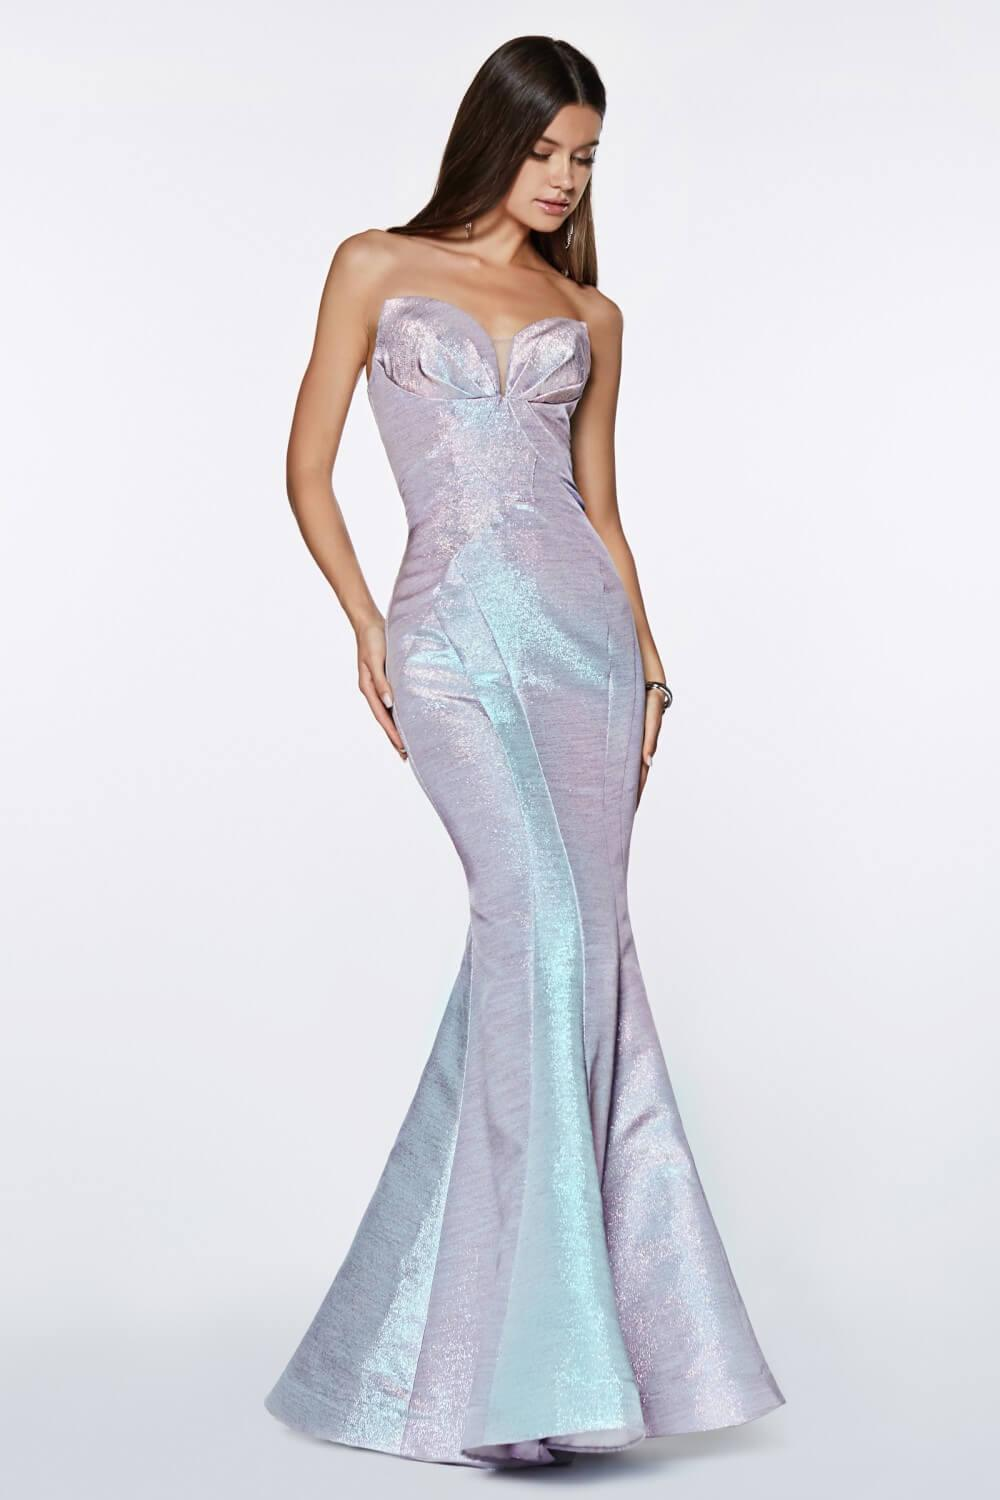 Strapless Long Metallic Mermaid Gown Prom Dress